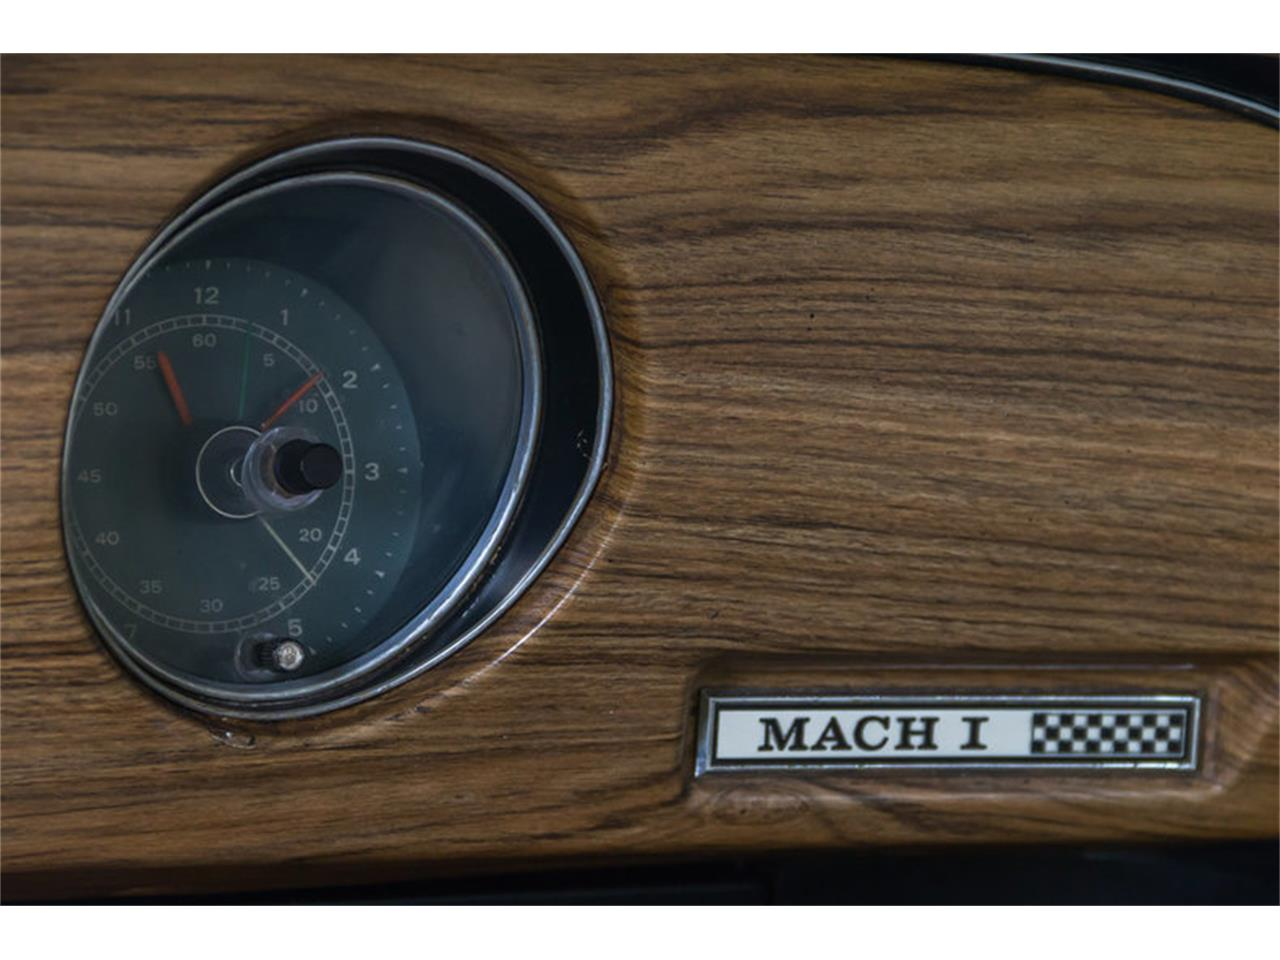 Large Picture of '69 Mustang Mach 1 S Code located in Plymouth Michigan - $59,900.00 Offered by Vanguard Motor Sales - IS3G